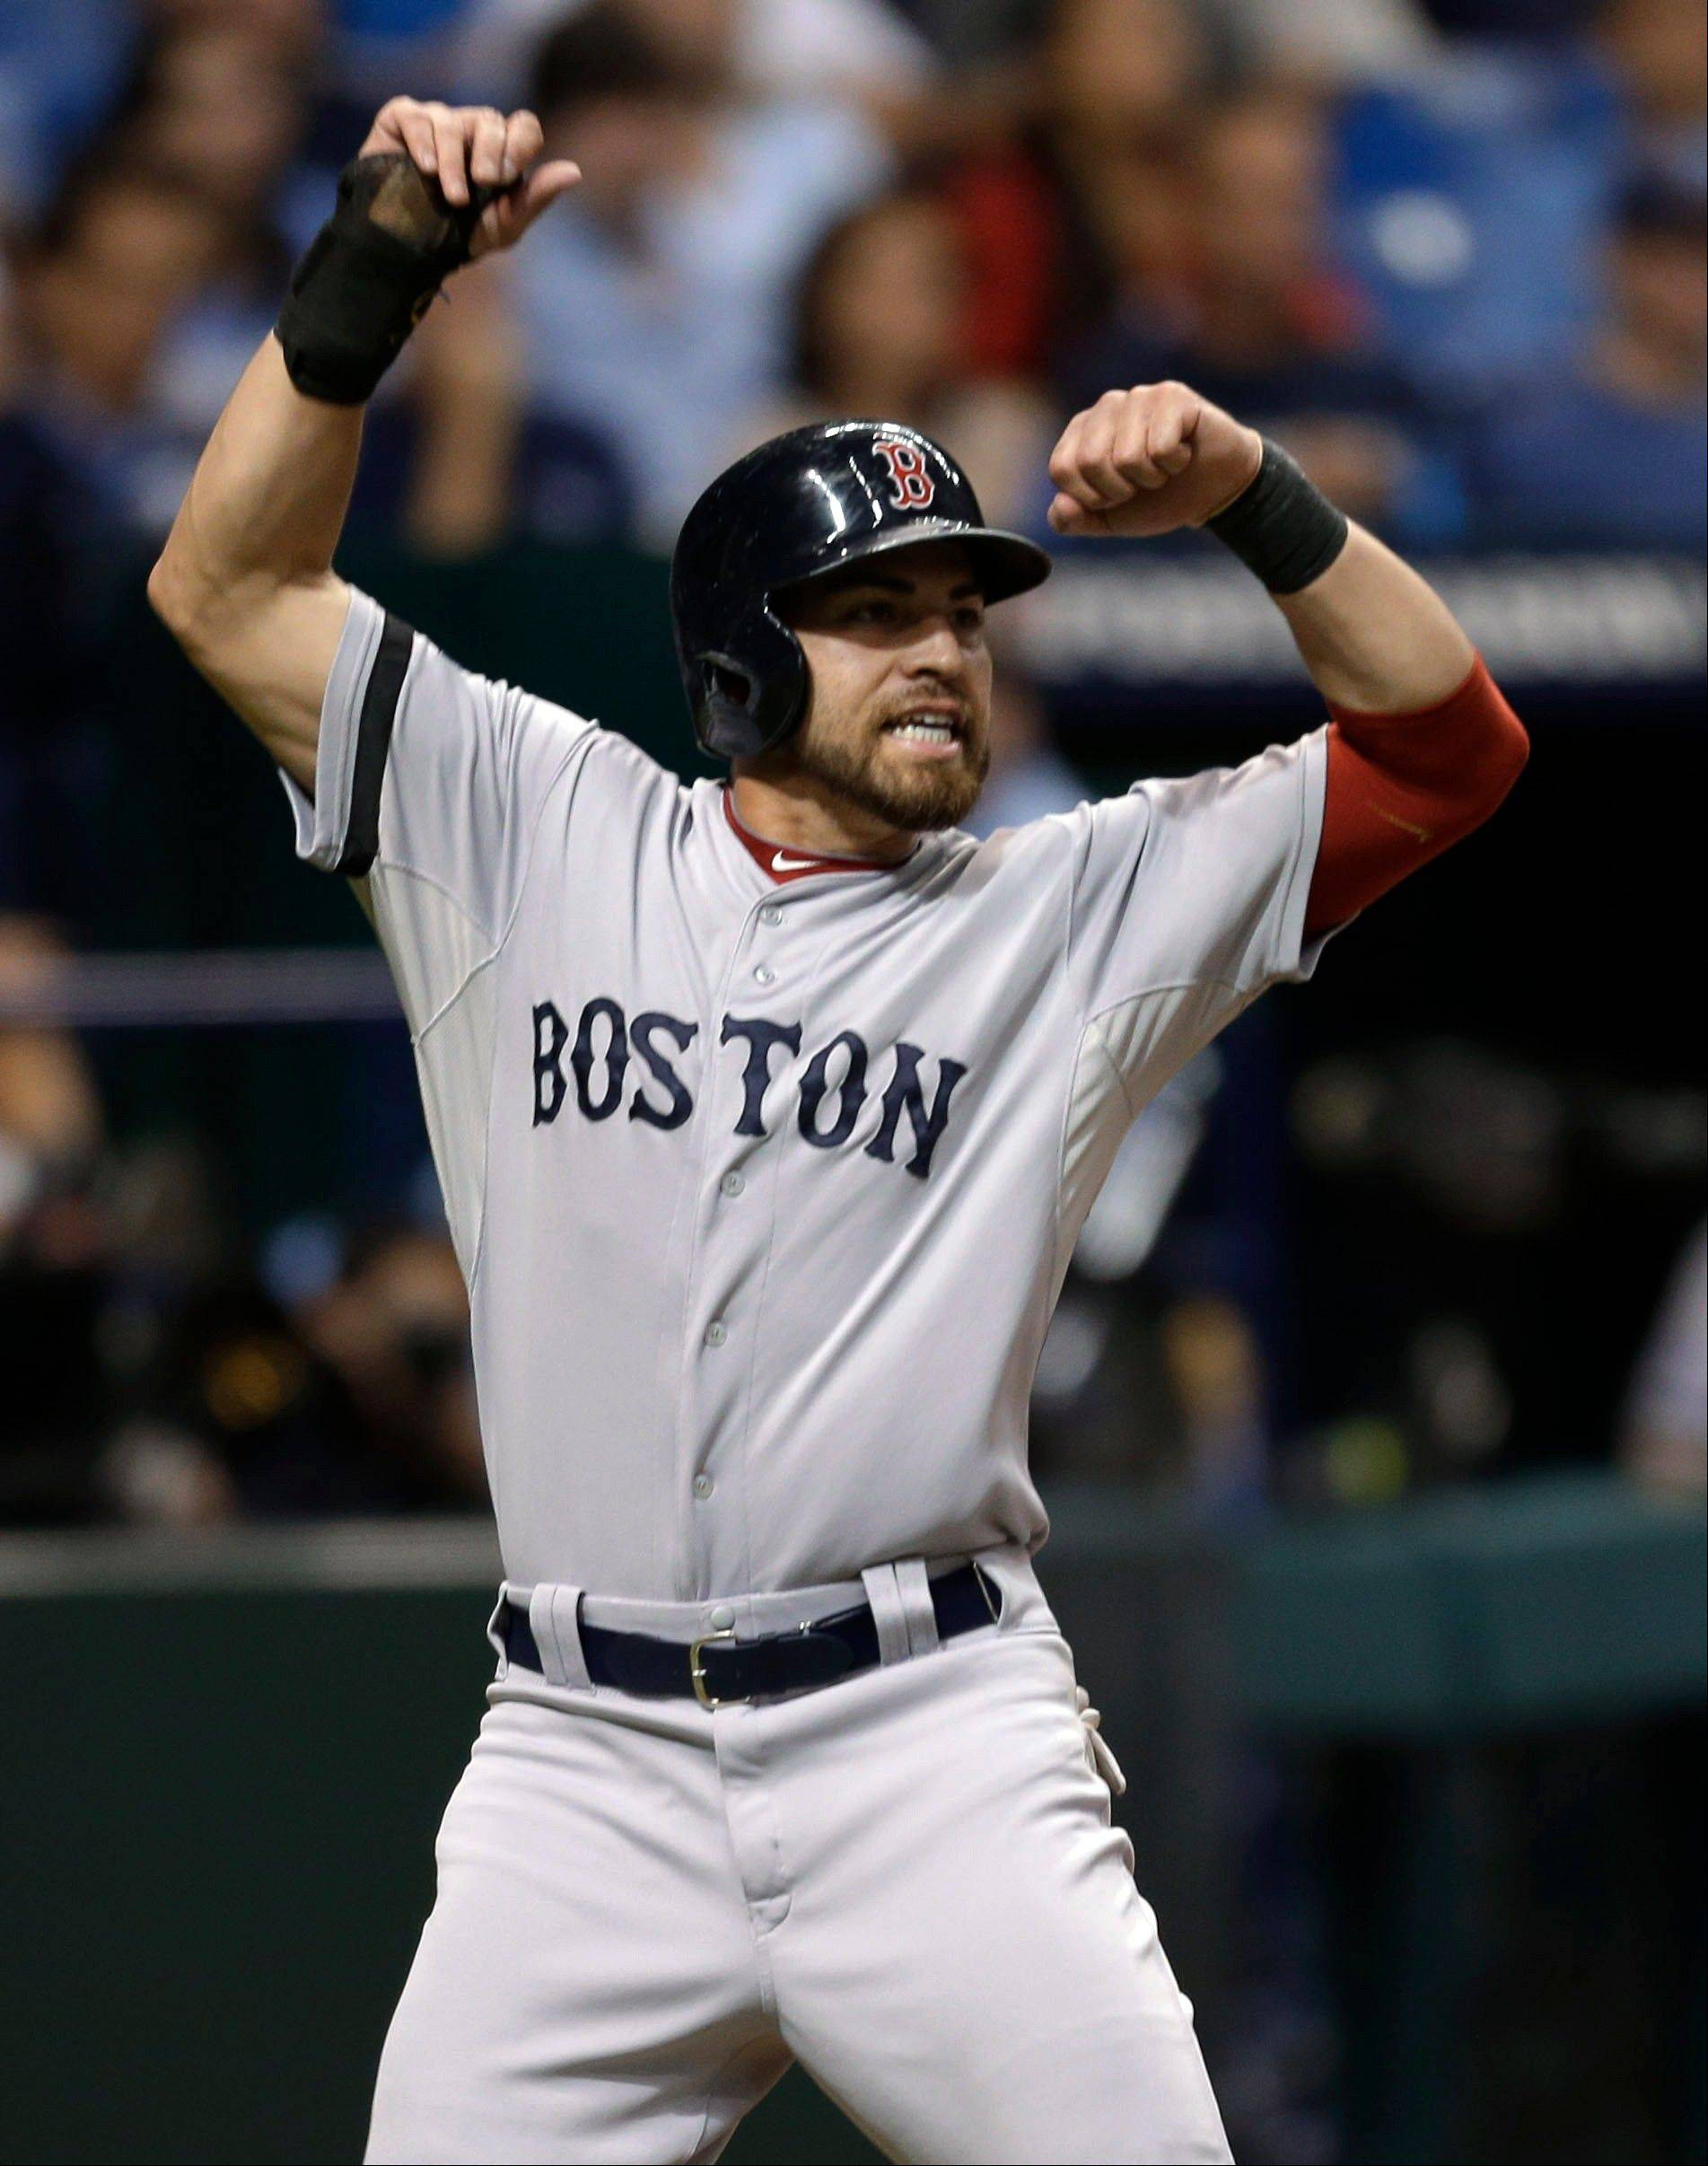 Red Sox center fielder Jacoby Ellsbury reacts as he scores on a single by Shane Victorino in the seventh inning Tuesday in Game 4 of an American League Division Series against the Tampa Bay Rays in St. Petersburg, Fla.